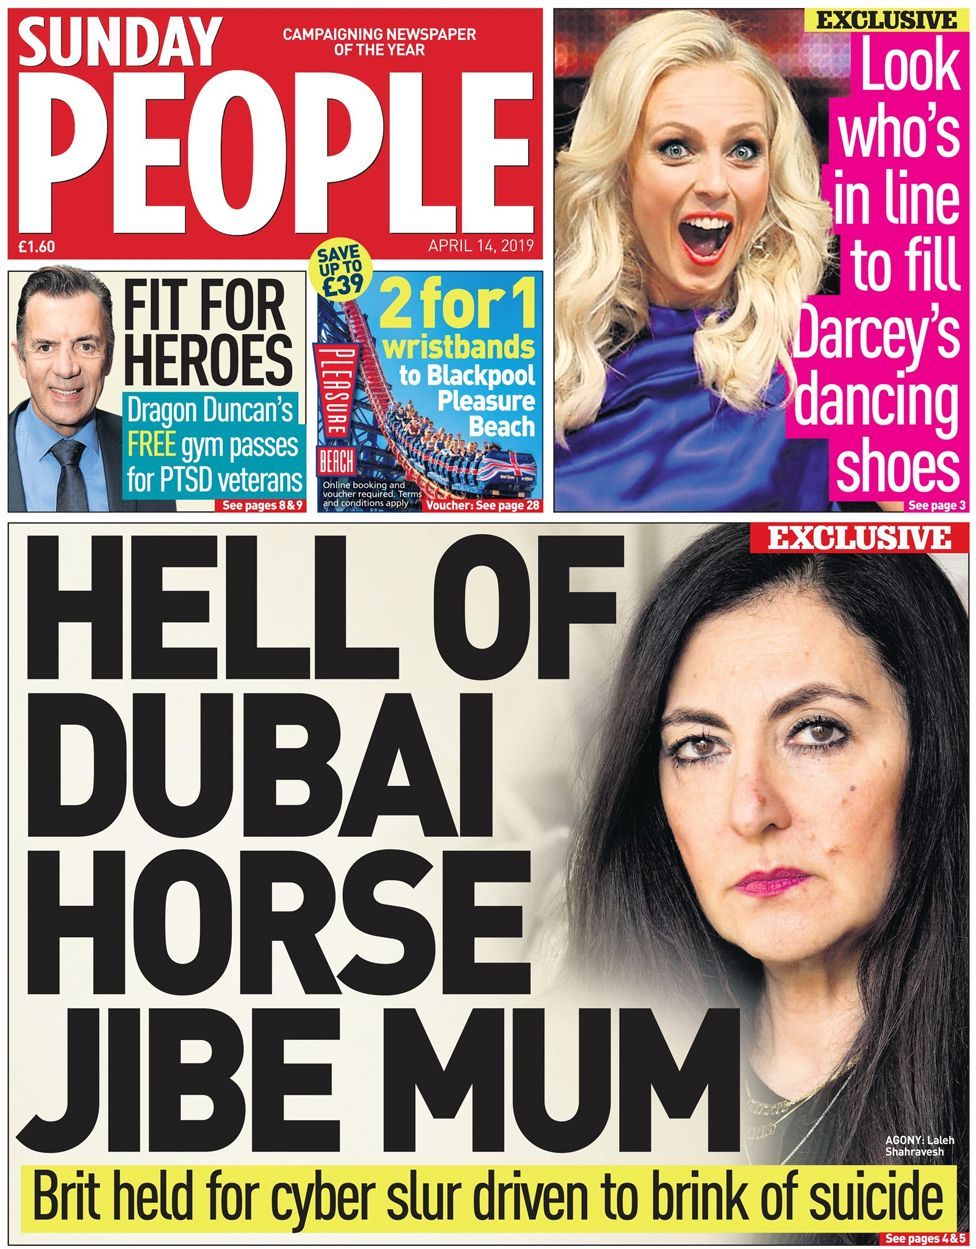 Sunday People front page, 14/4/19